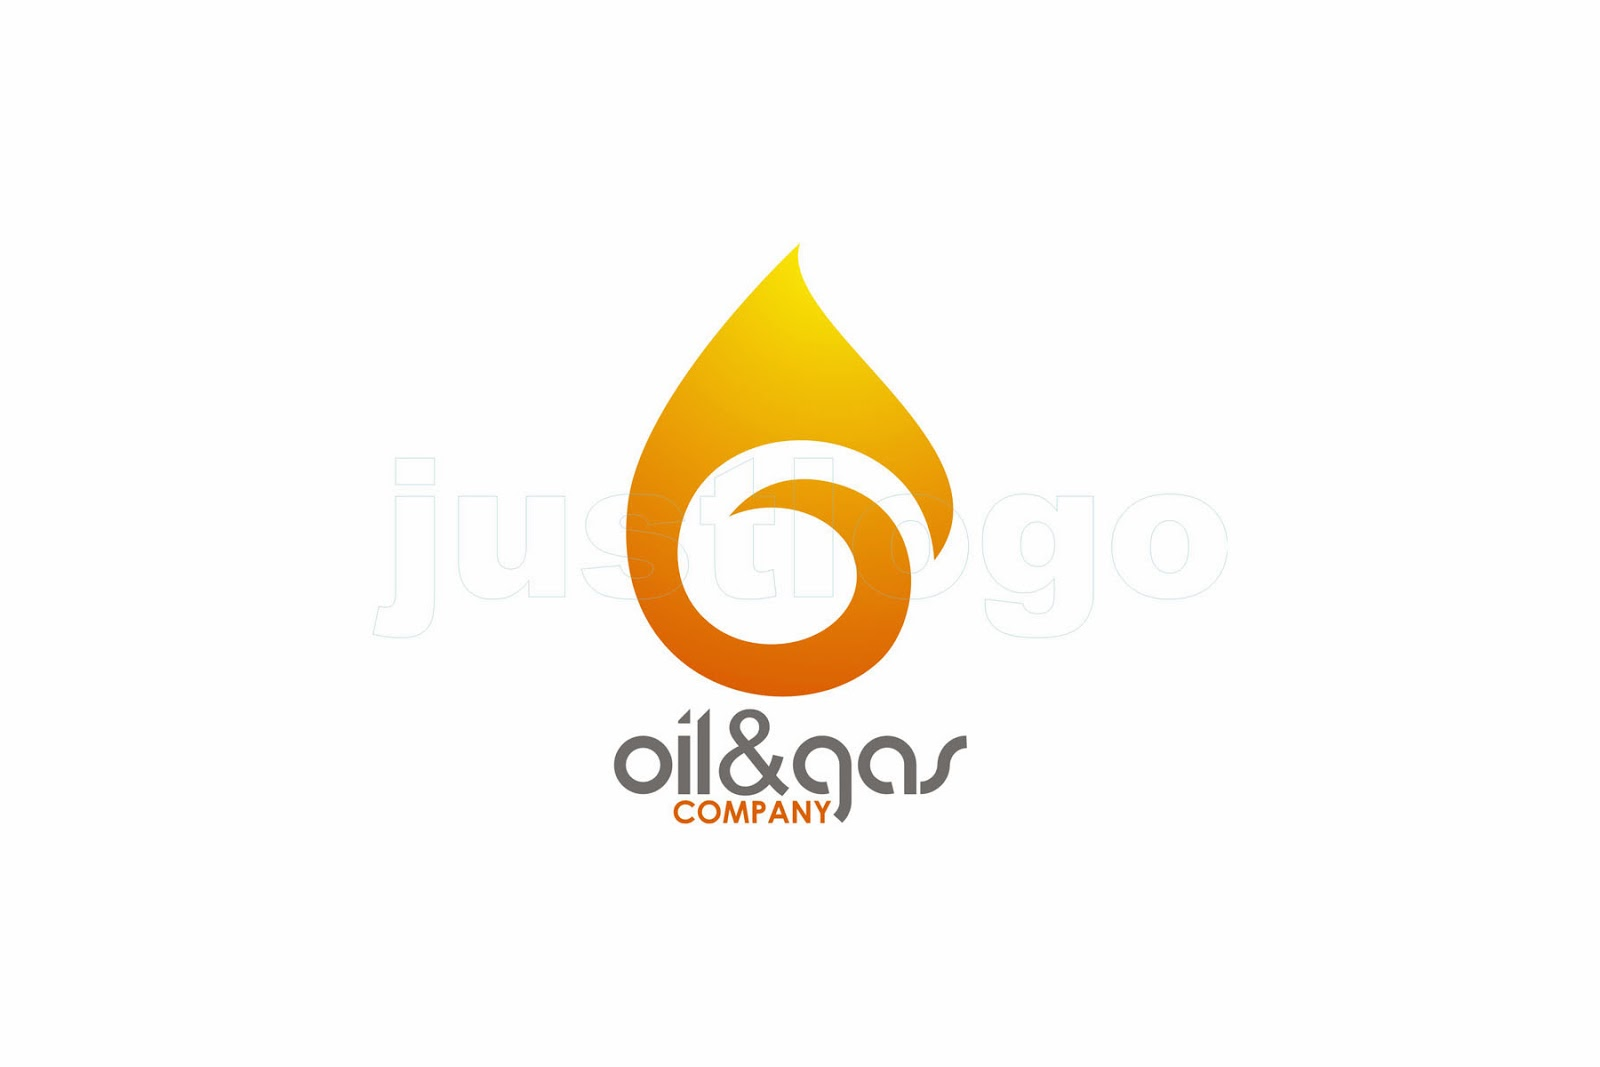 Oil and gas company Logos.